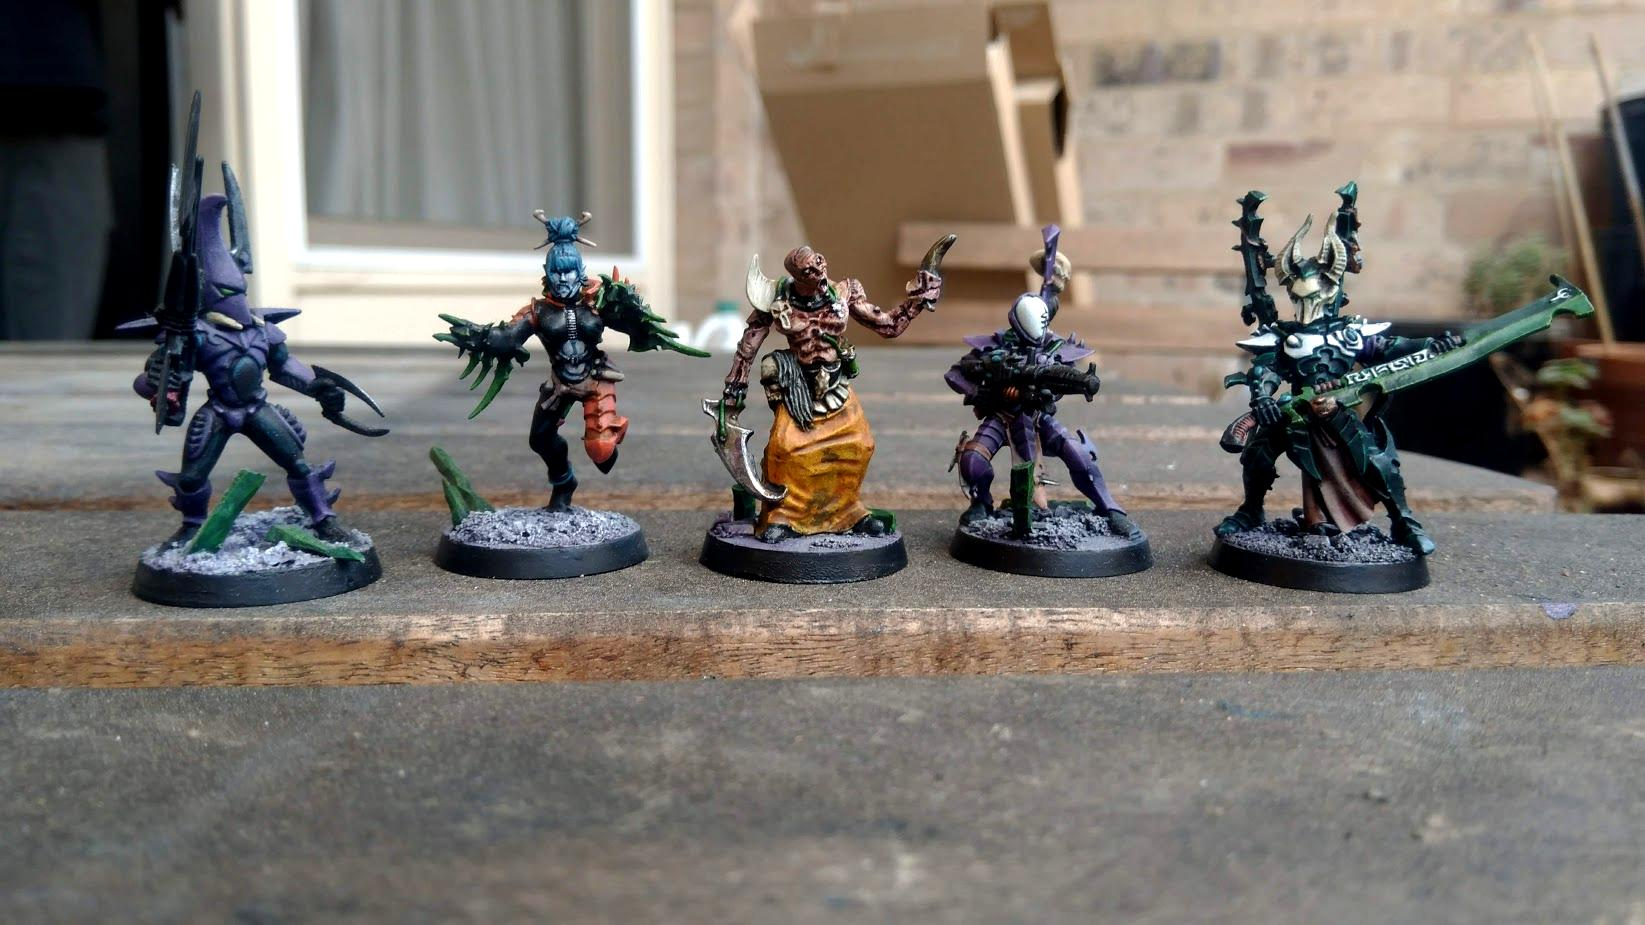 Dark Eldar, Grotesques, Haemonculi, Incubi, Kabalite Warriors, Wracks, Wyches